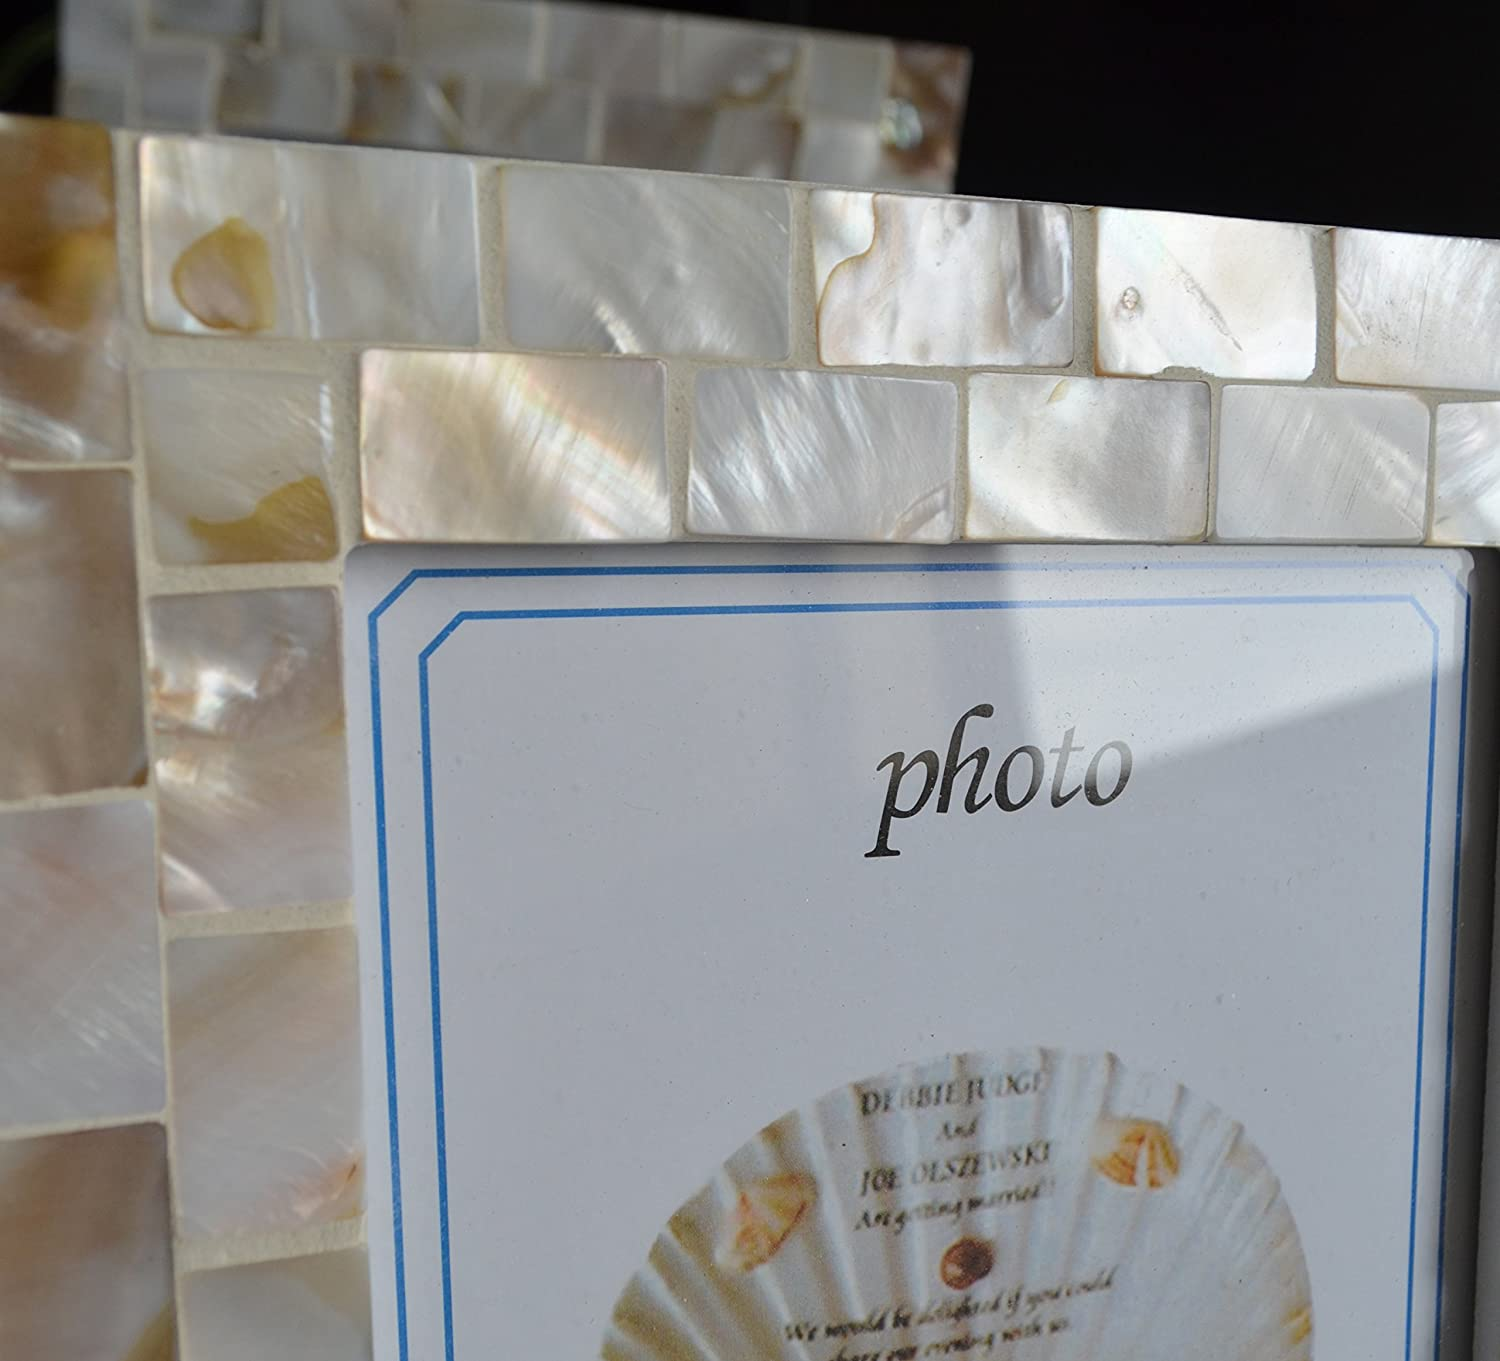 GIFTME 5 Mother of Pearl Mosaic Photo Frames 3.5by5 Beach Tabletop Picture Frame 3.5x5, White